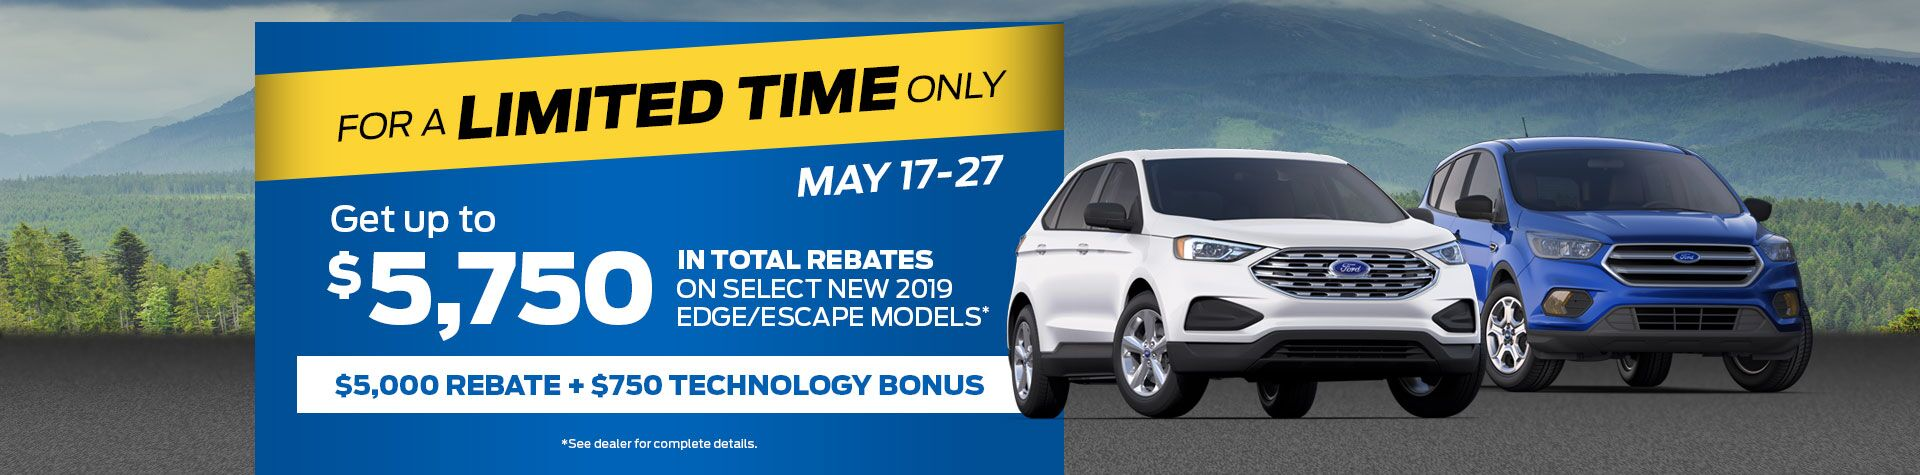 Limited Time Ford Edge/Escape Models